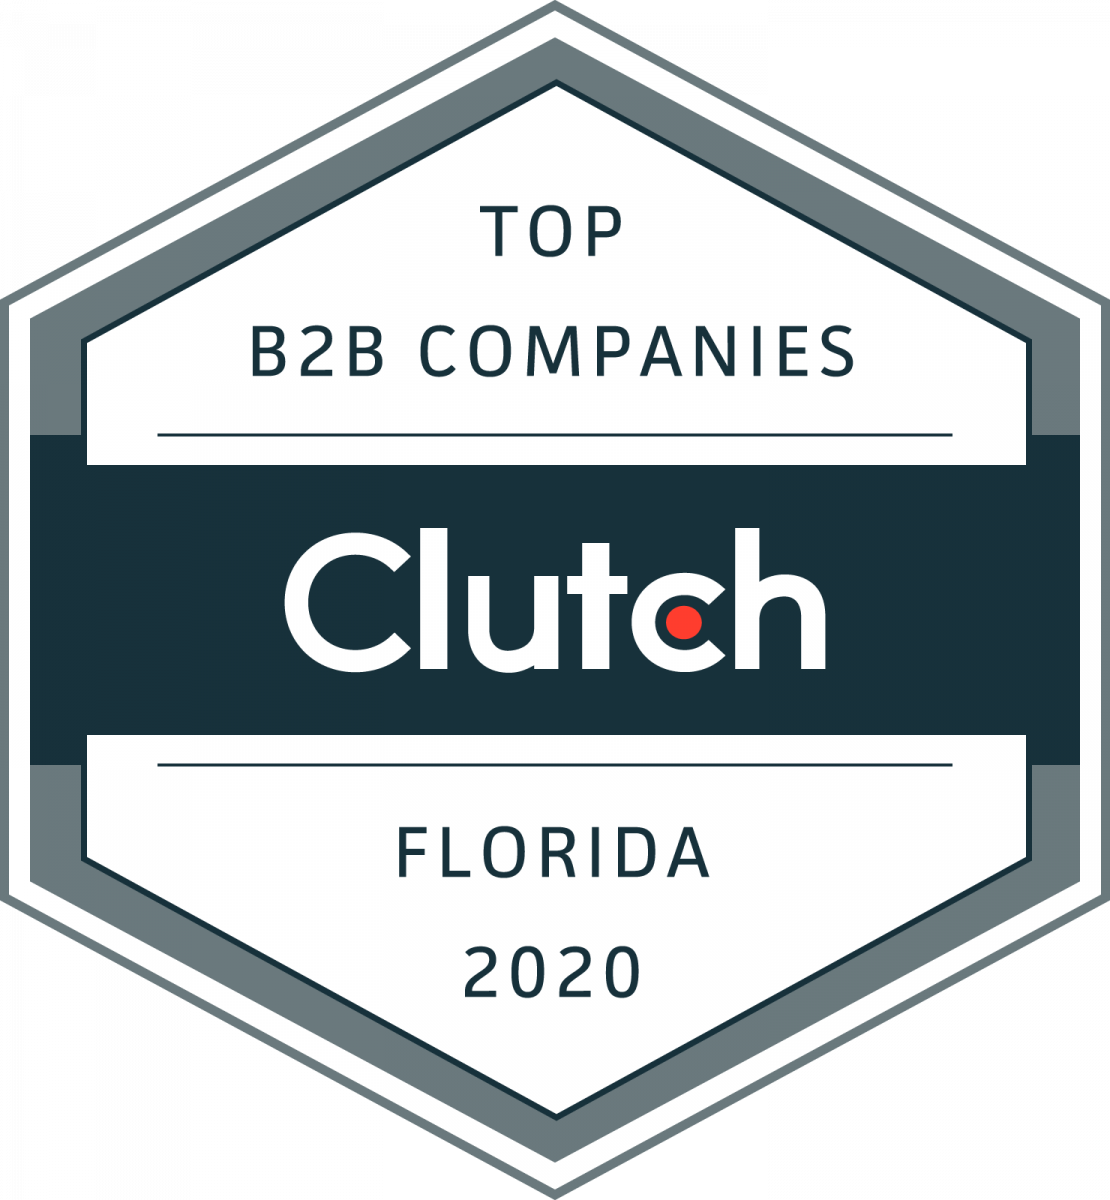 Top B2B Companies in Florida